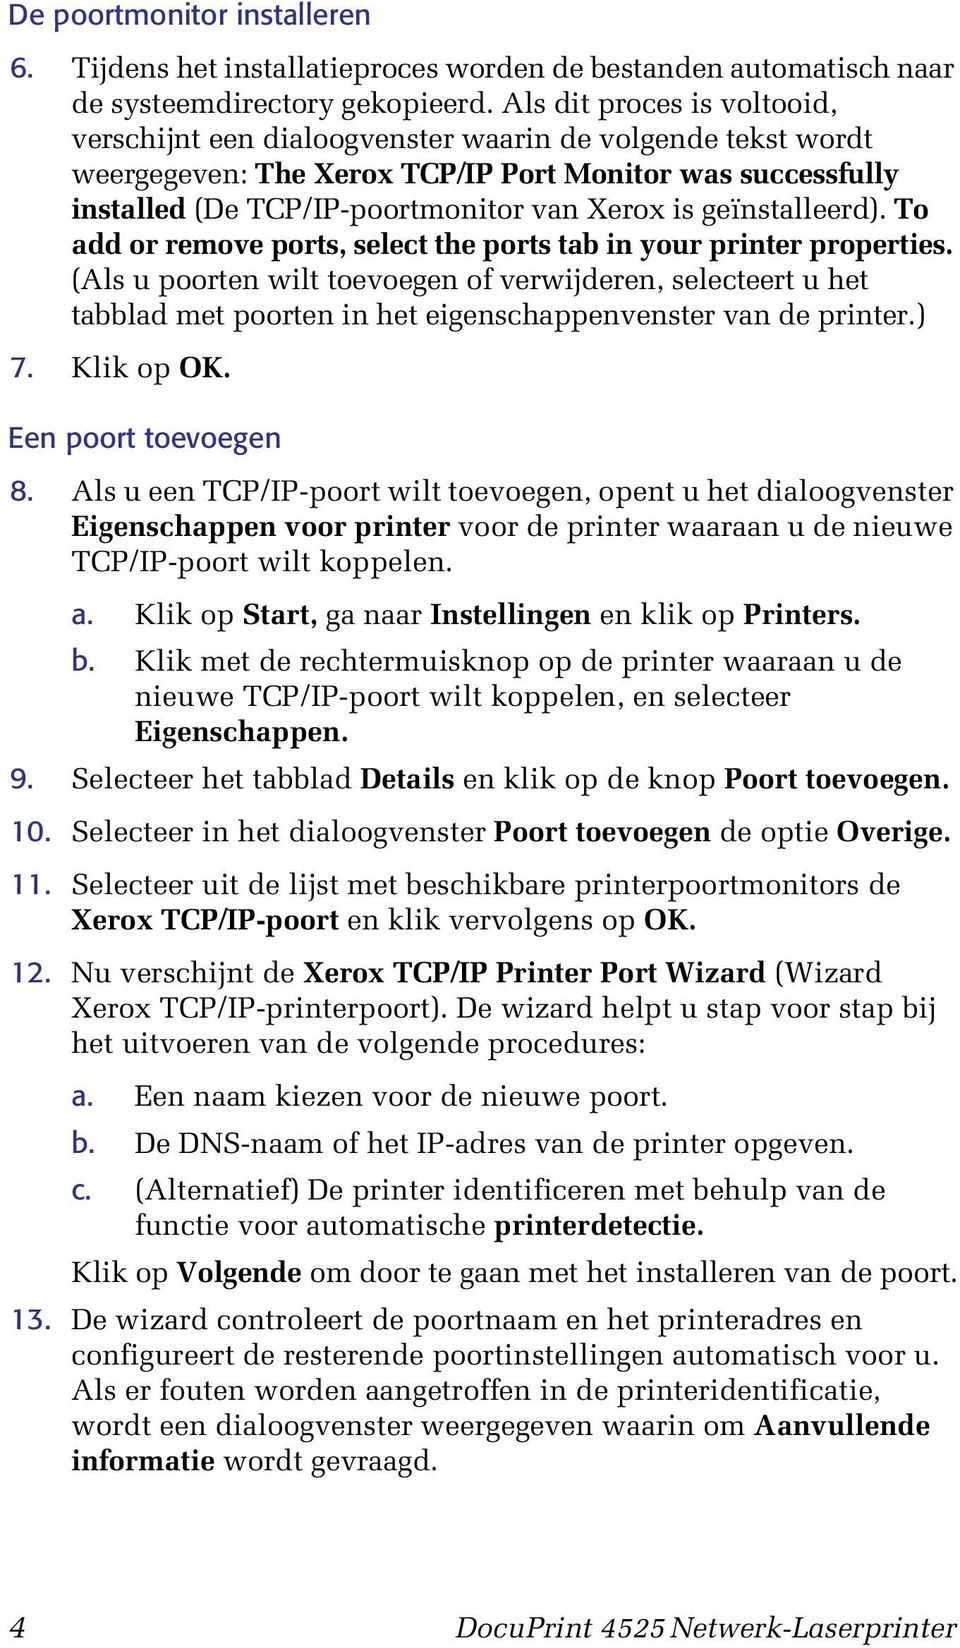 geïnstalleerd). To add or remove ports, select the ports tab in your printer properties.